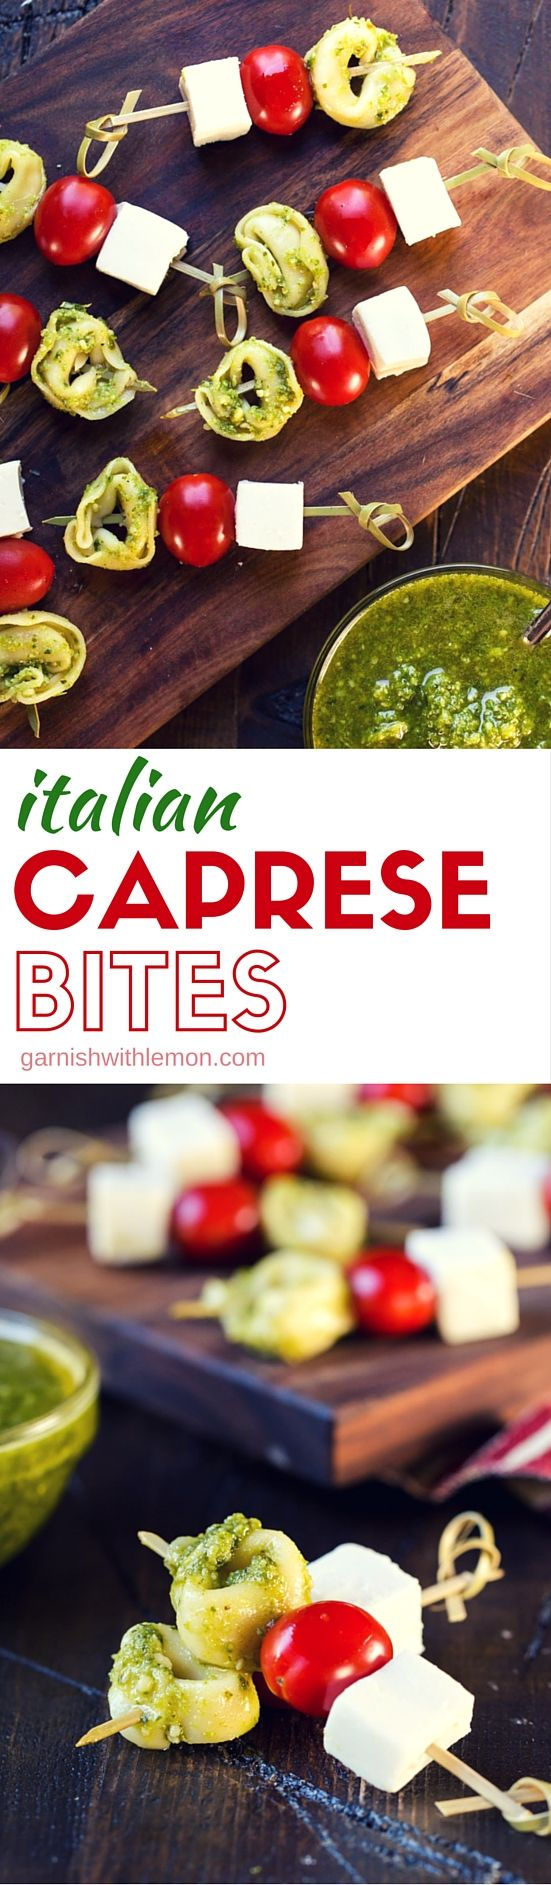 These 4-ingredient Caprese Bites are the easiest appetizer I've made in a long time! Plus everyone loves the flavors of fresh tomatoes, mozzarella, pesto and tortellini.